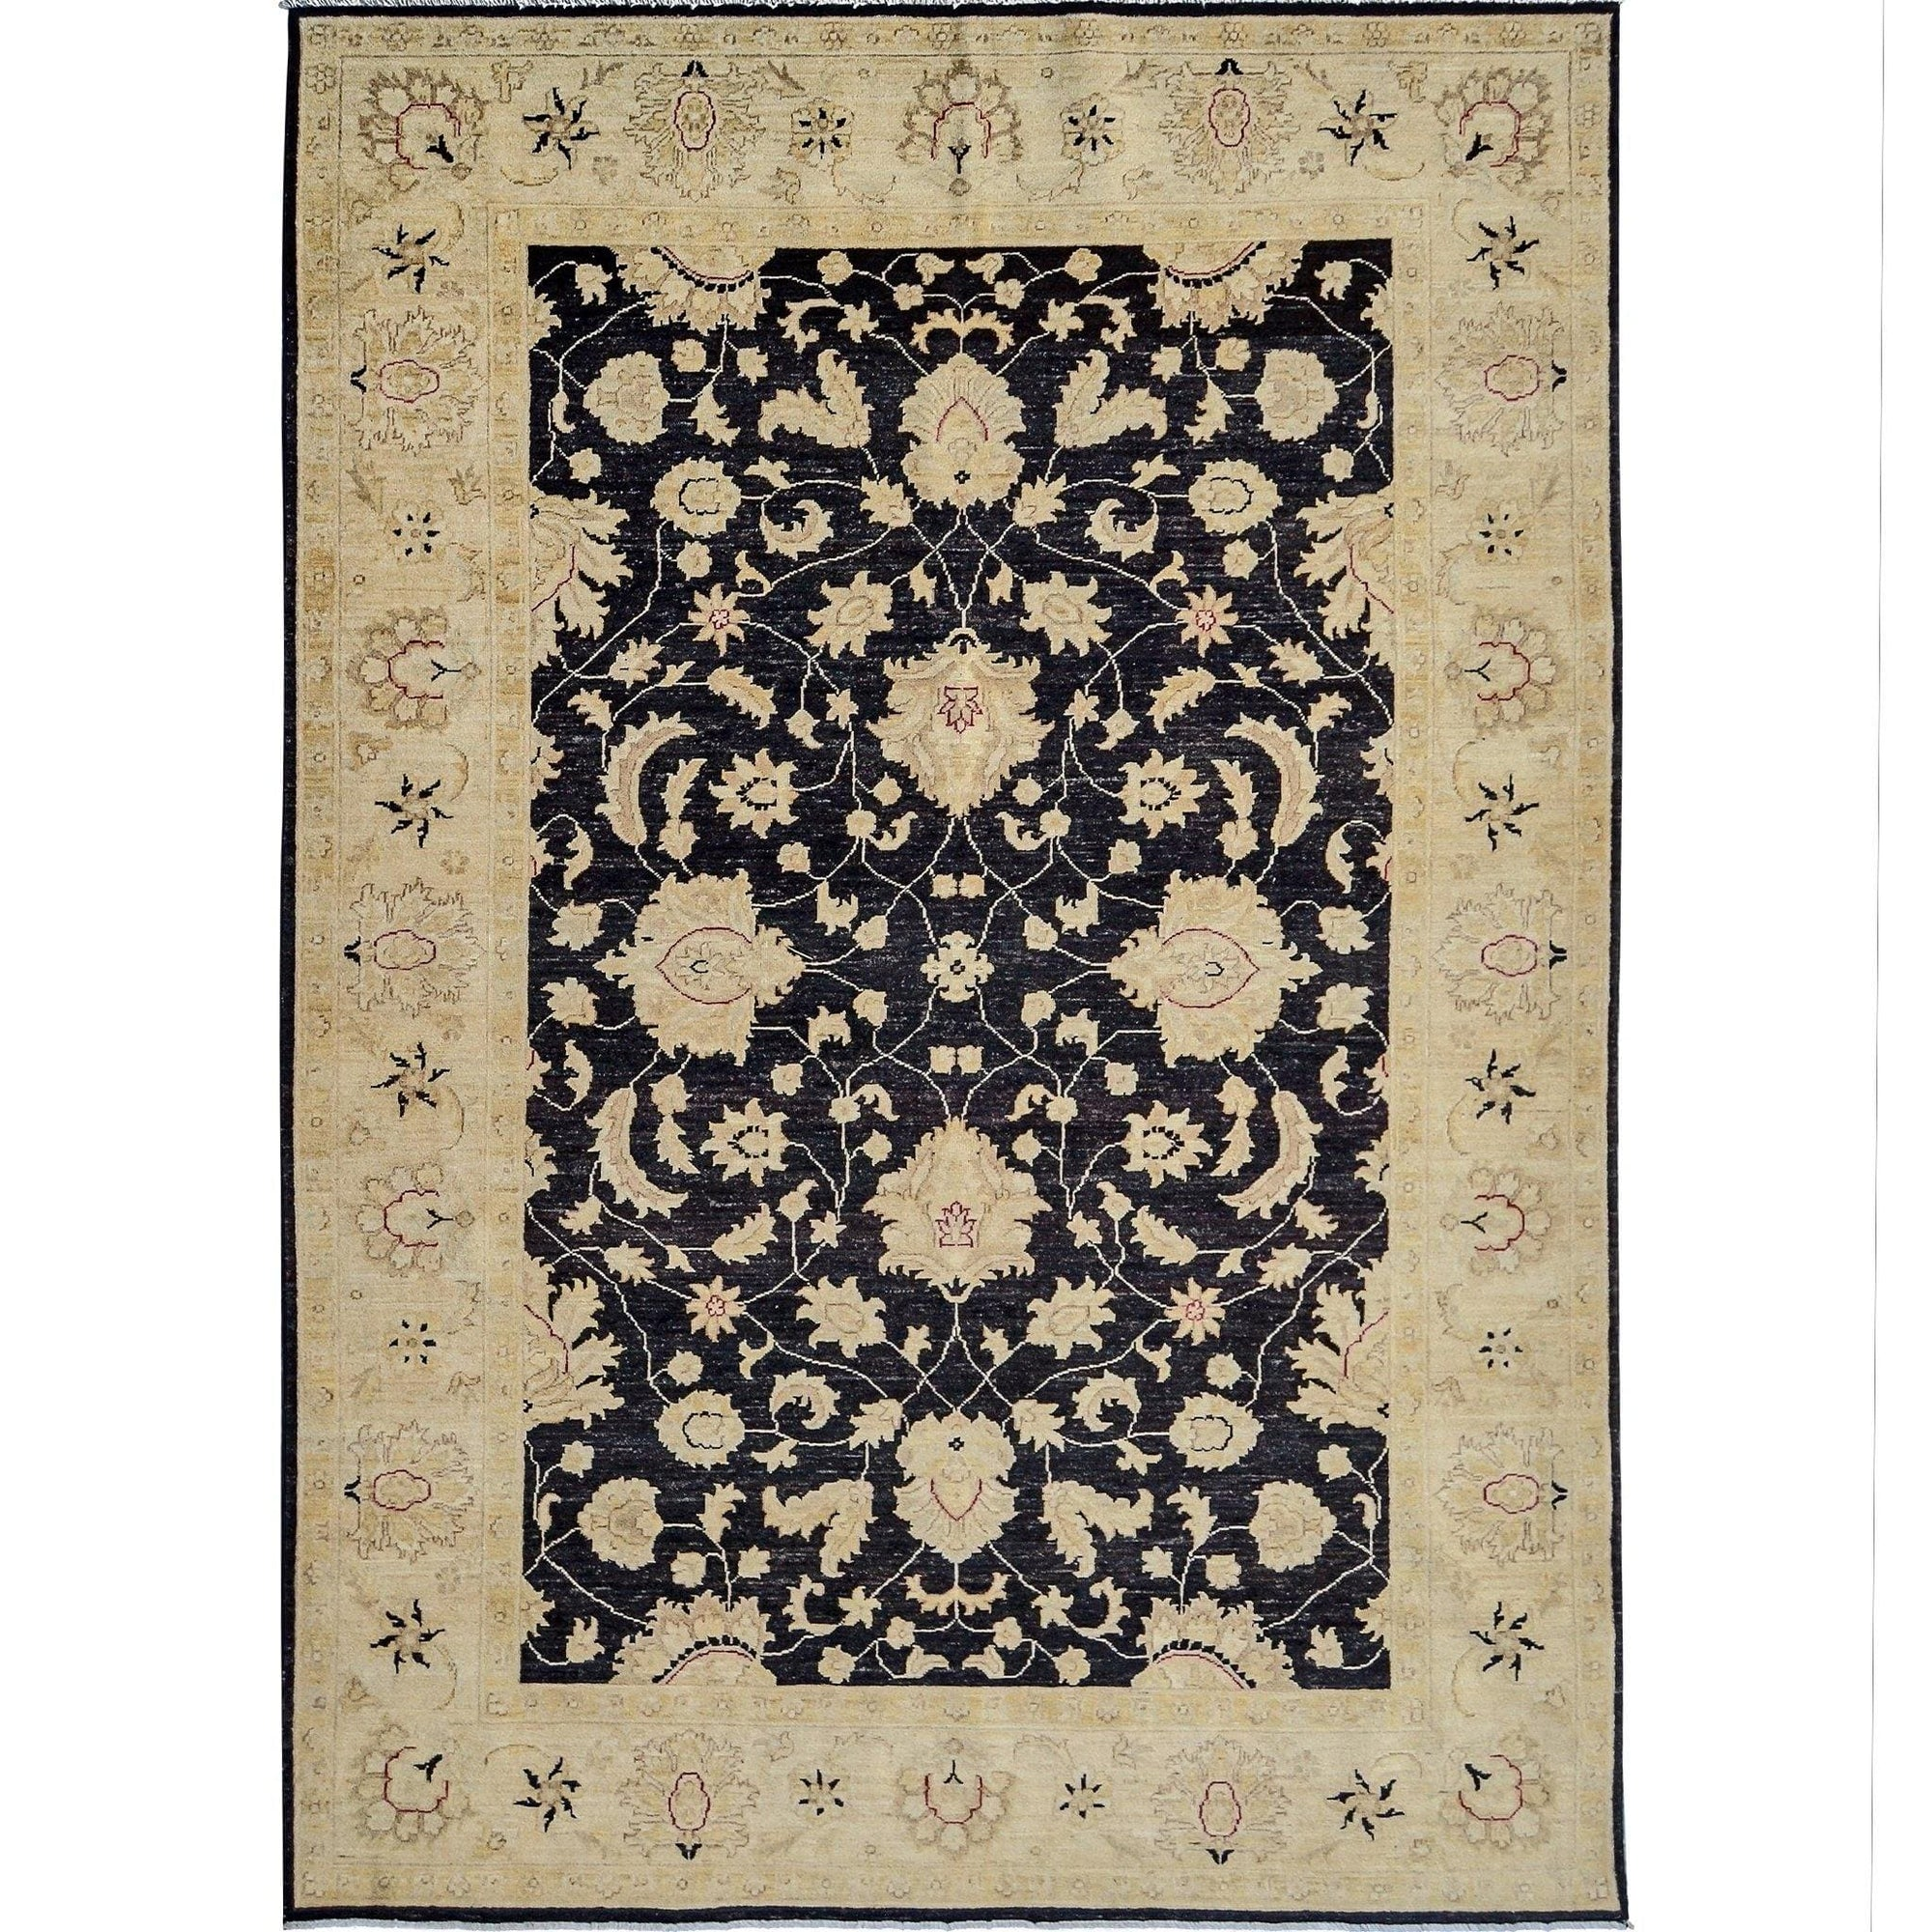 Fine Hand-knotted Wool Vintage Design Rug 198cm x 297cm Persian-Rug | House-of-Haghi | NewMarket | Auckland | NZ | Handmade Persian Rugs | Hand Knotted Persian Rugs